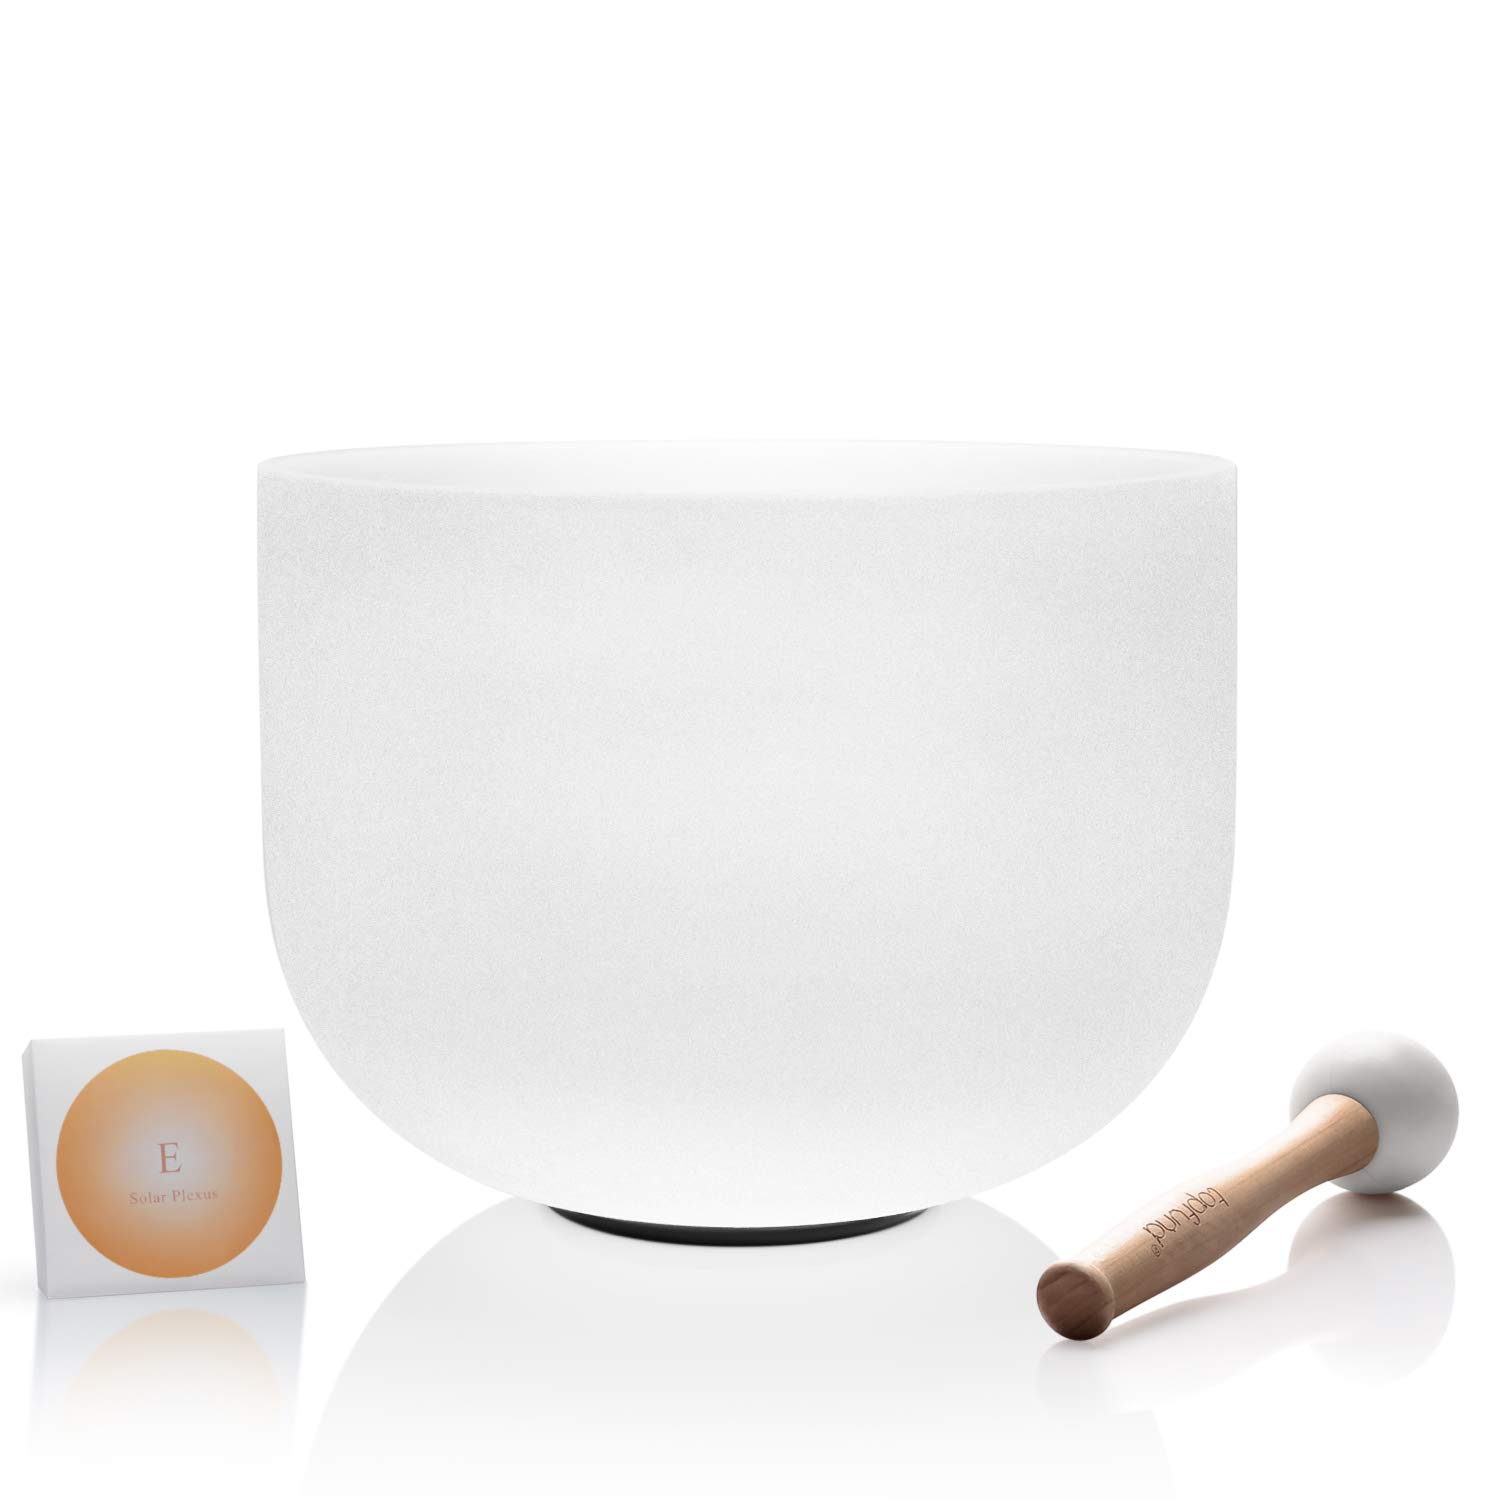 TOPFUND 432Hz Perfect Pitch E Note Crystal Singing Bowl Solar Plexus Chakra 10 inch O-ring and Rubber Mallet included by TOPFUND